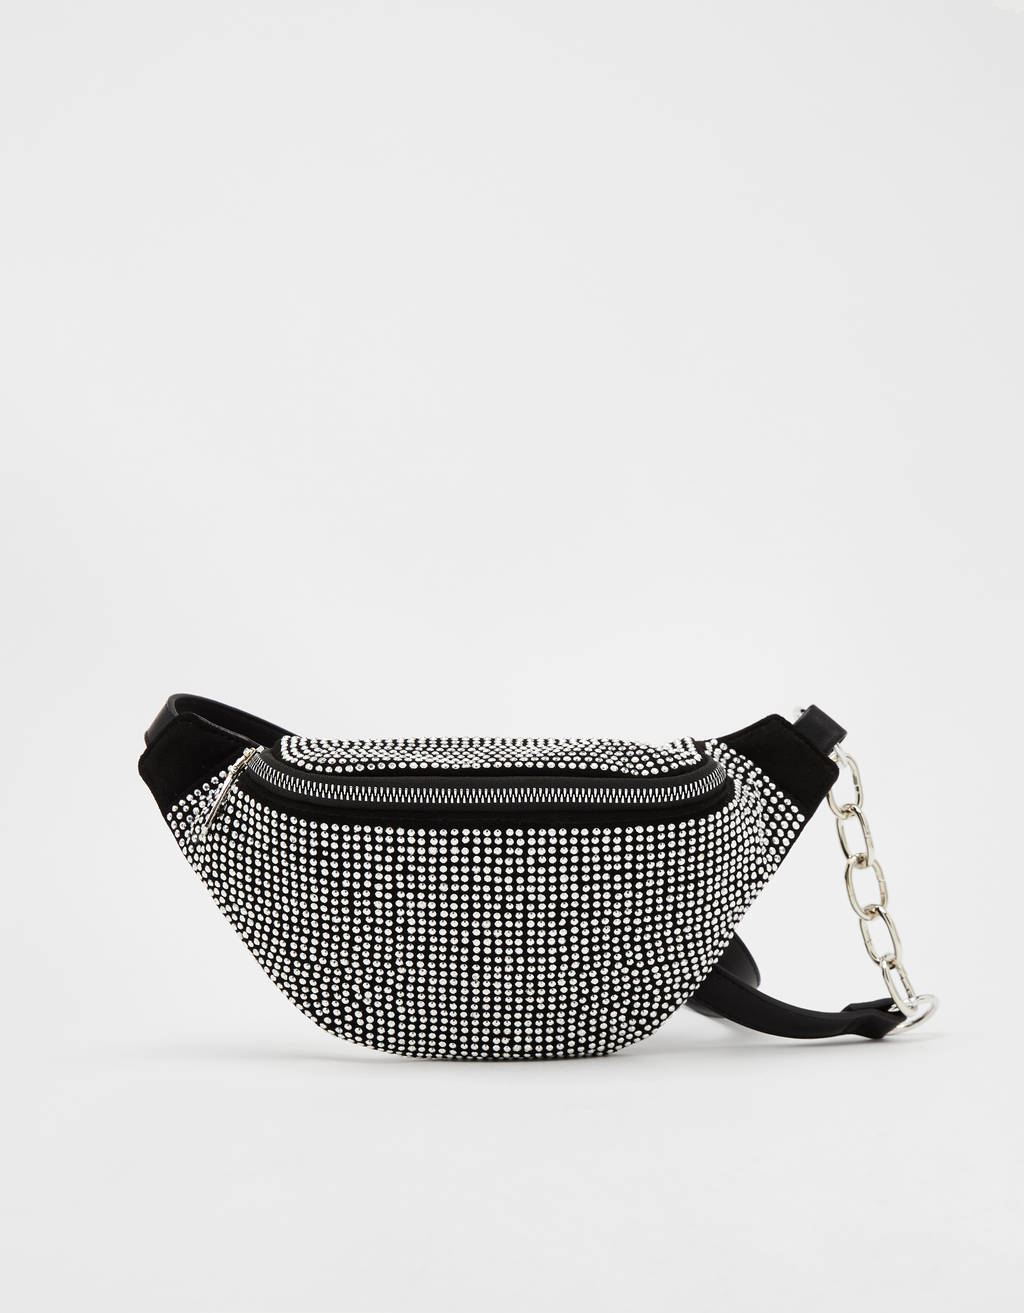 Fanny pack with chain